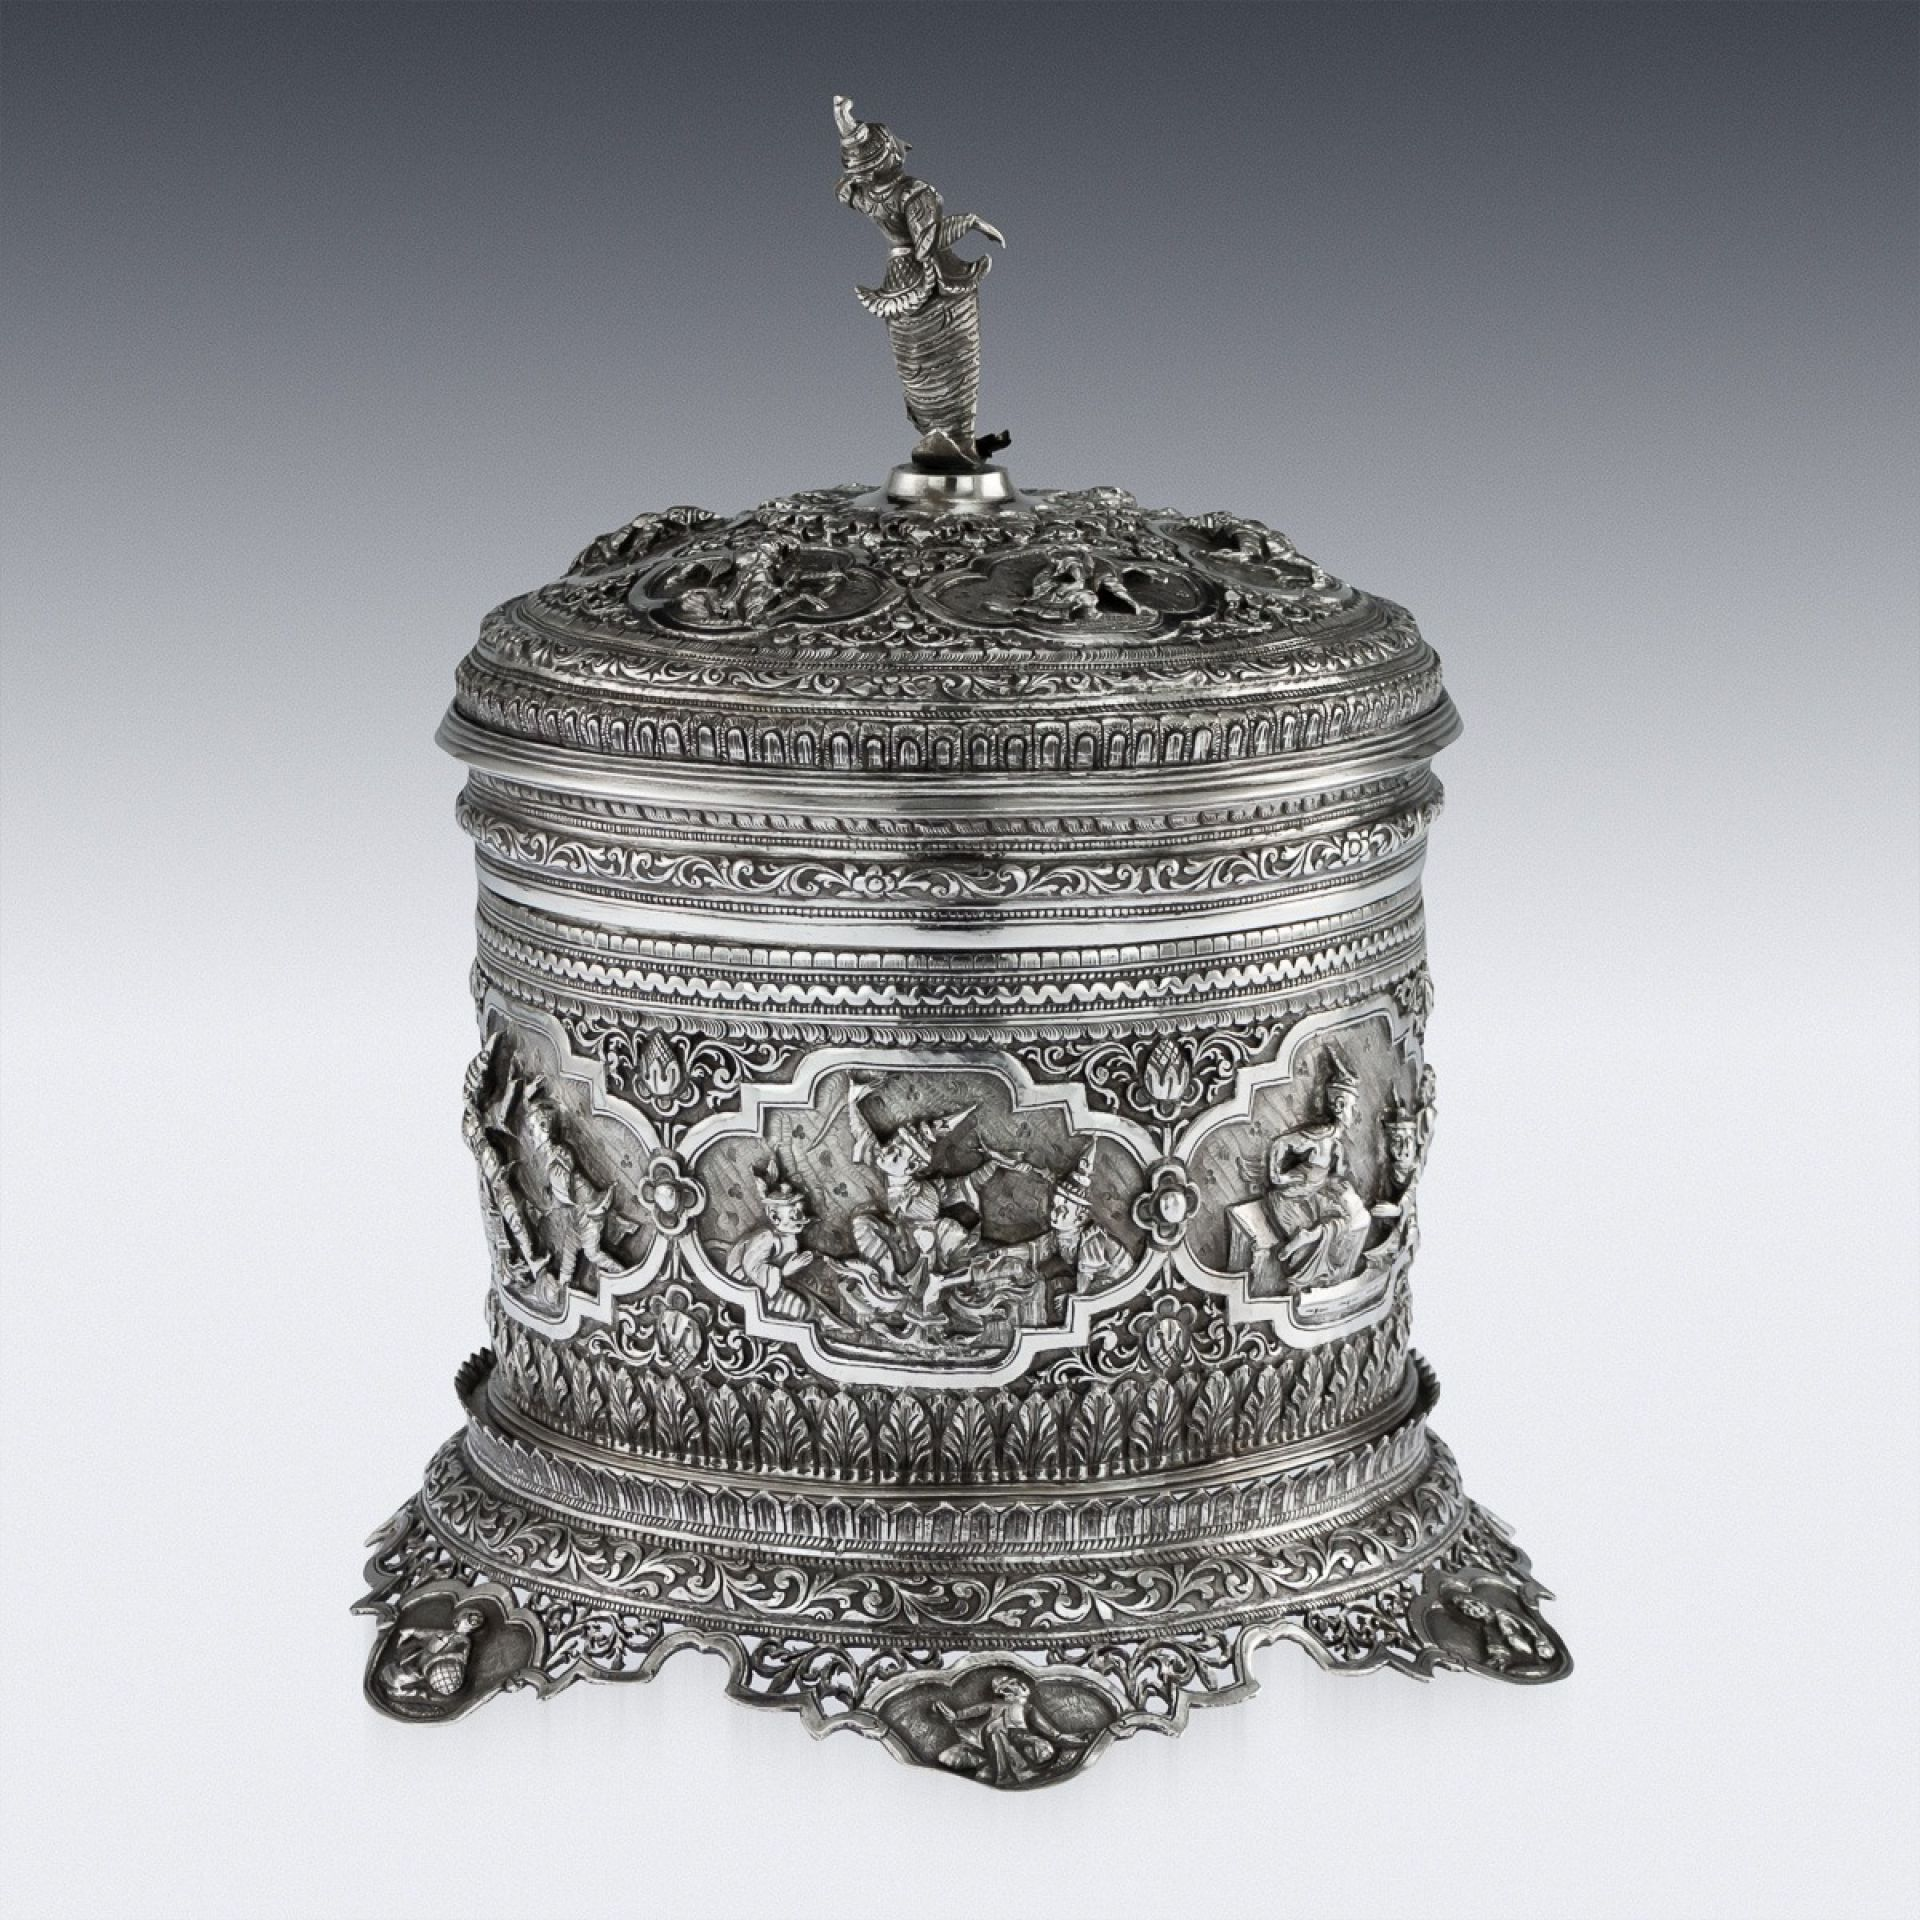 ANTIQUE 19thC BURMESE SOLID SILVER BETEL BOX ON STAND, RANGOON c.1890